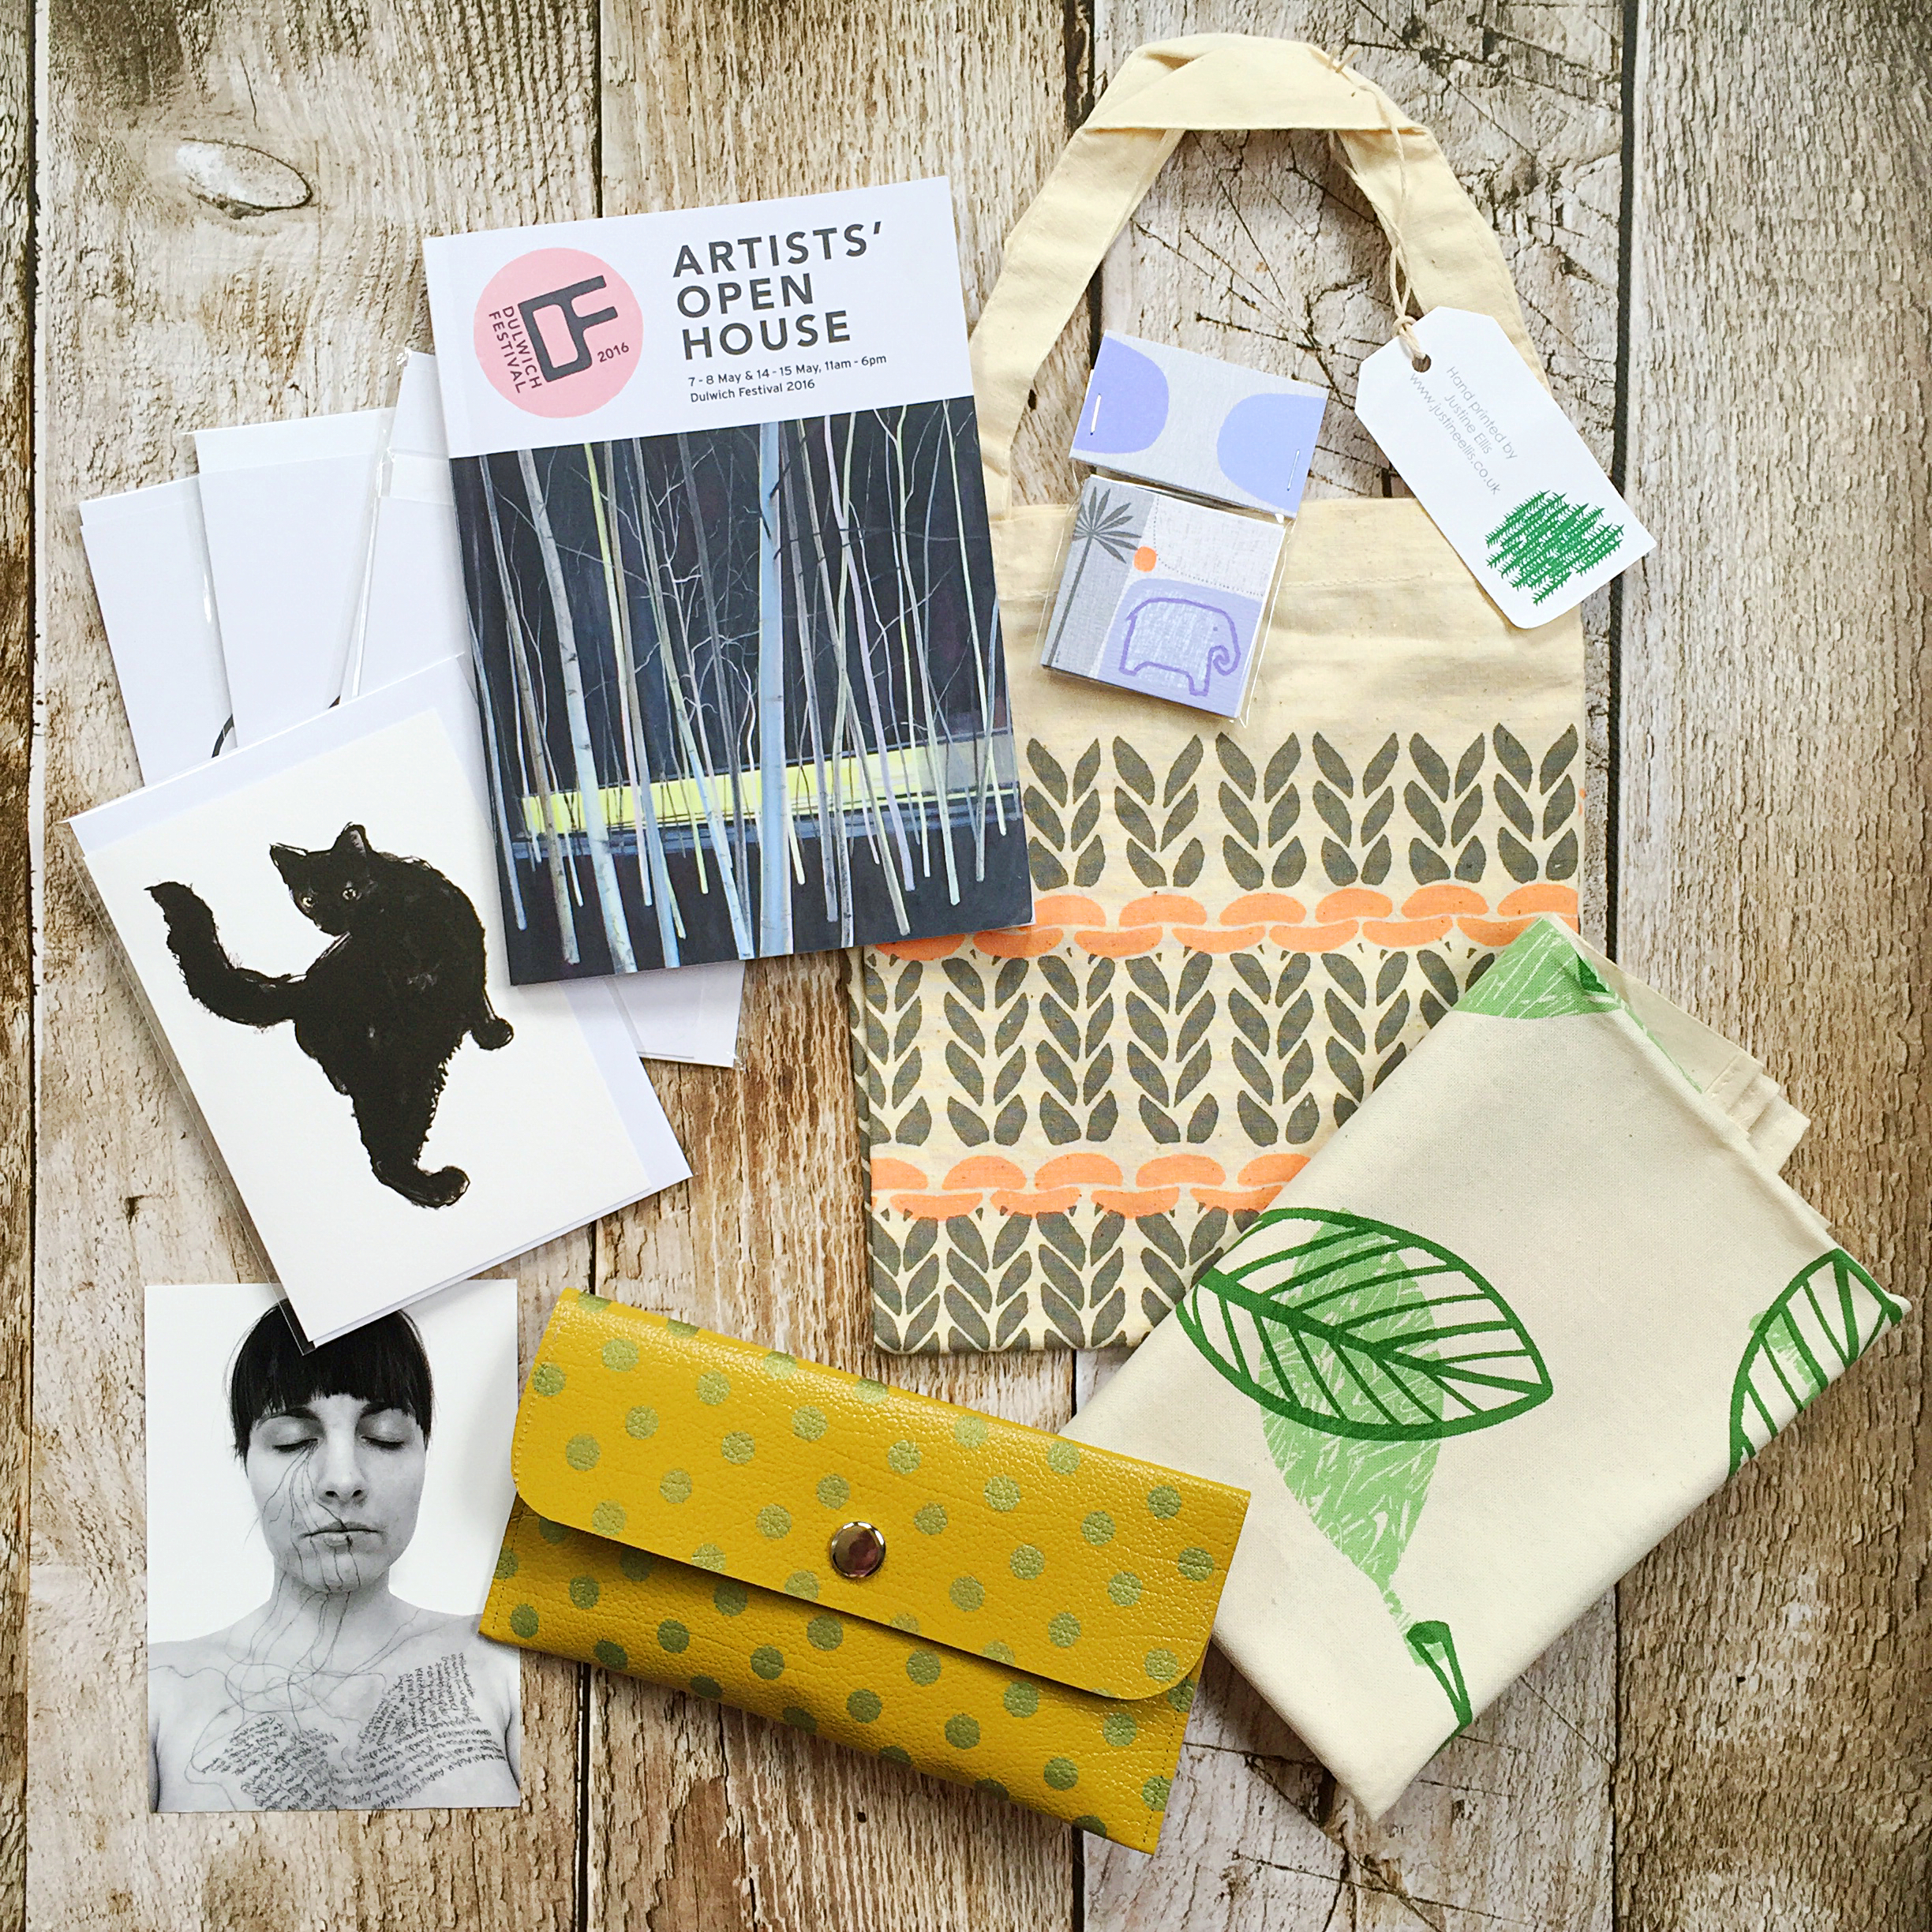 From top right: Tote bag and tea towel - Justine Ellis, mini cards (on the bag) - Sarah Hamilton, yellow spotty purse - Anna Jackson, postcard - Liz Atkin, cat greetings card - Tiff Howick